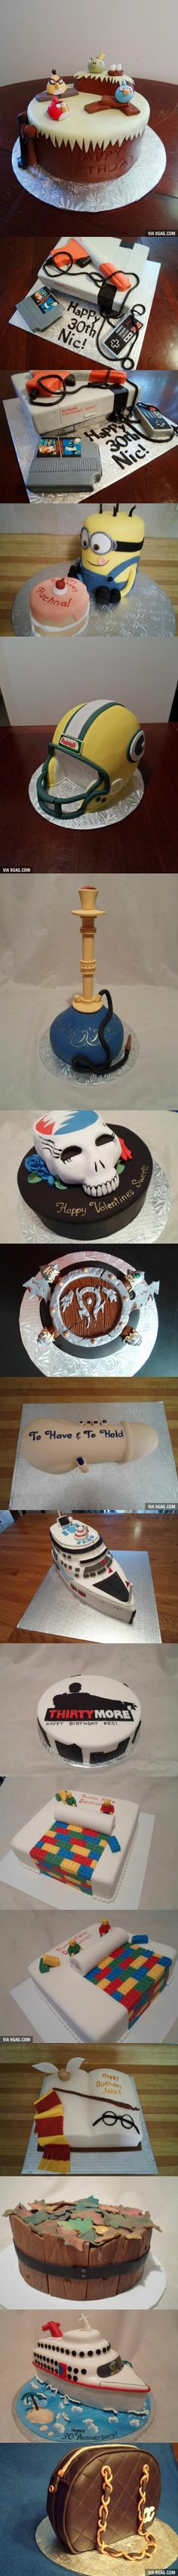 Those are amazing... That person is a cake-making genius